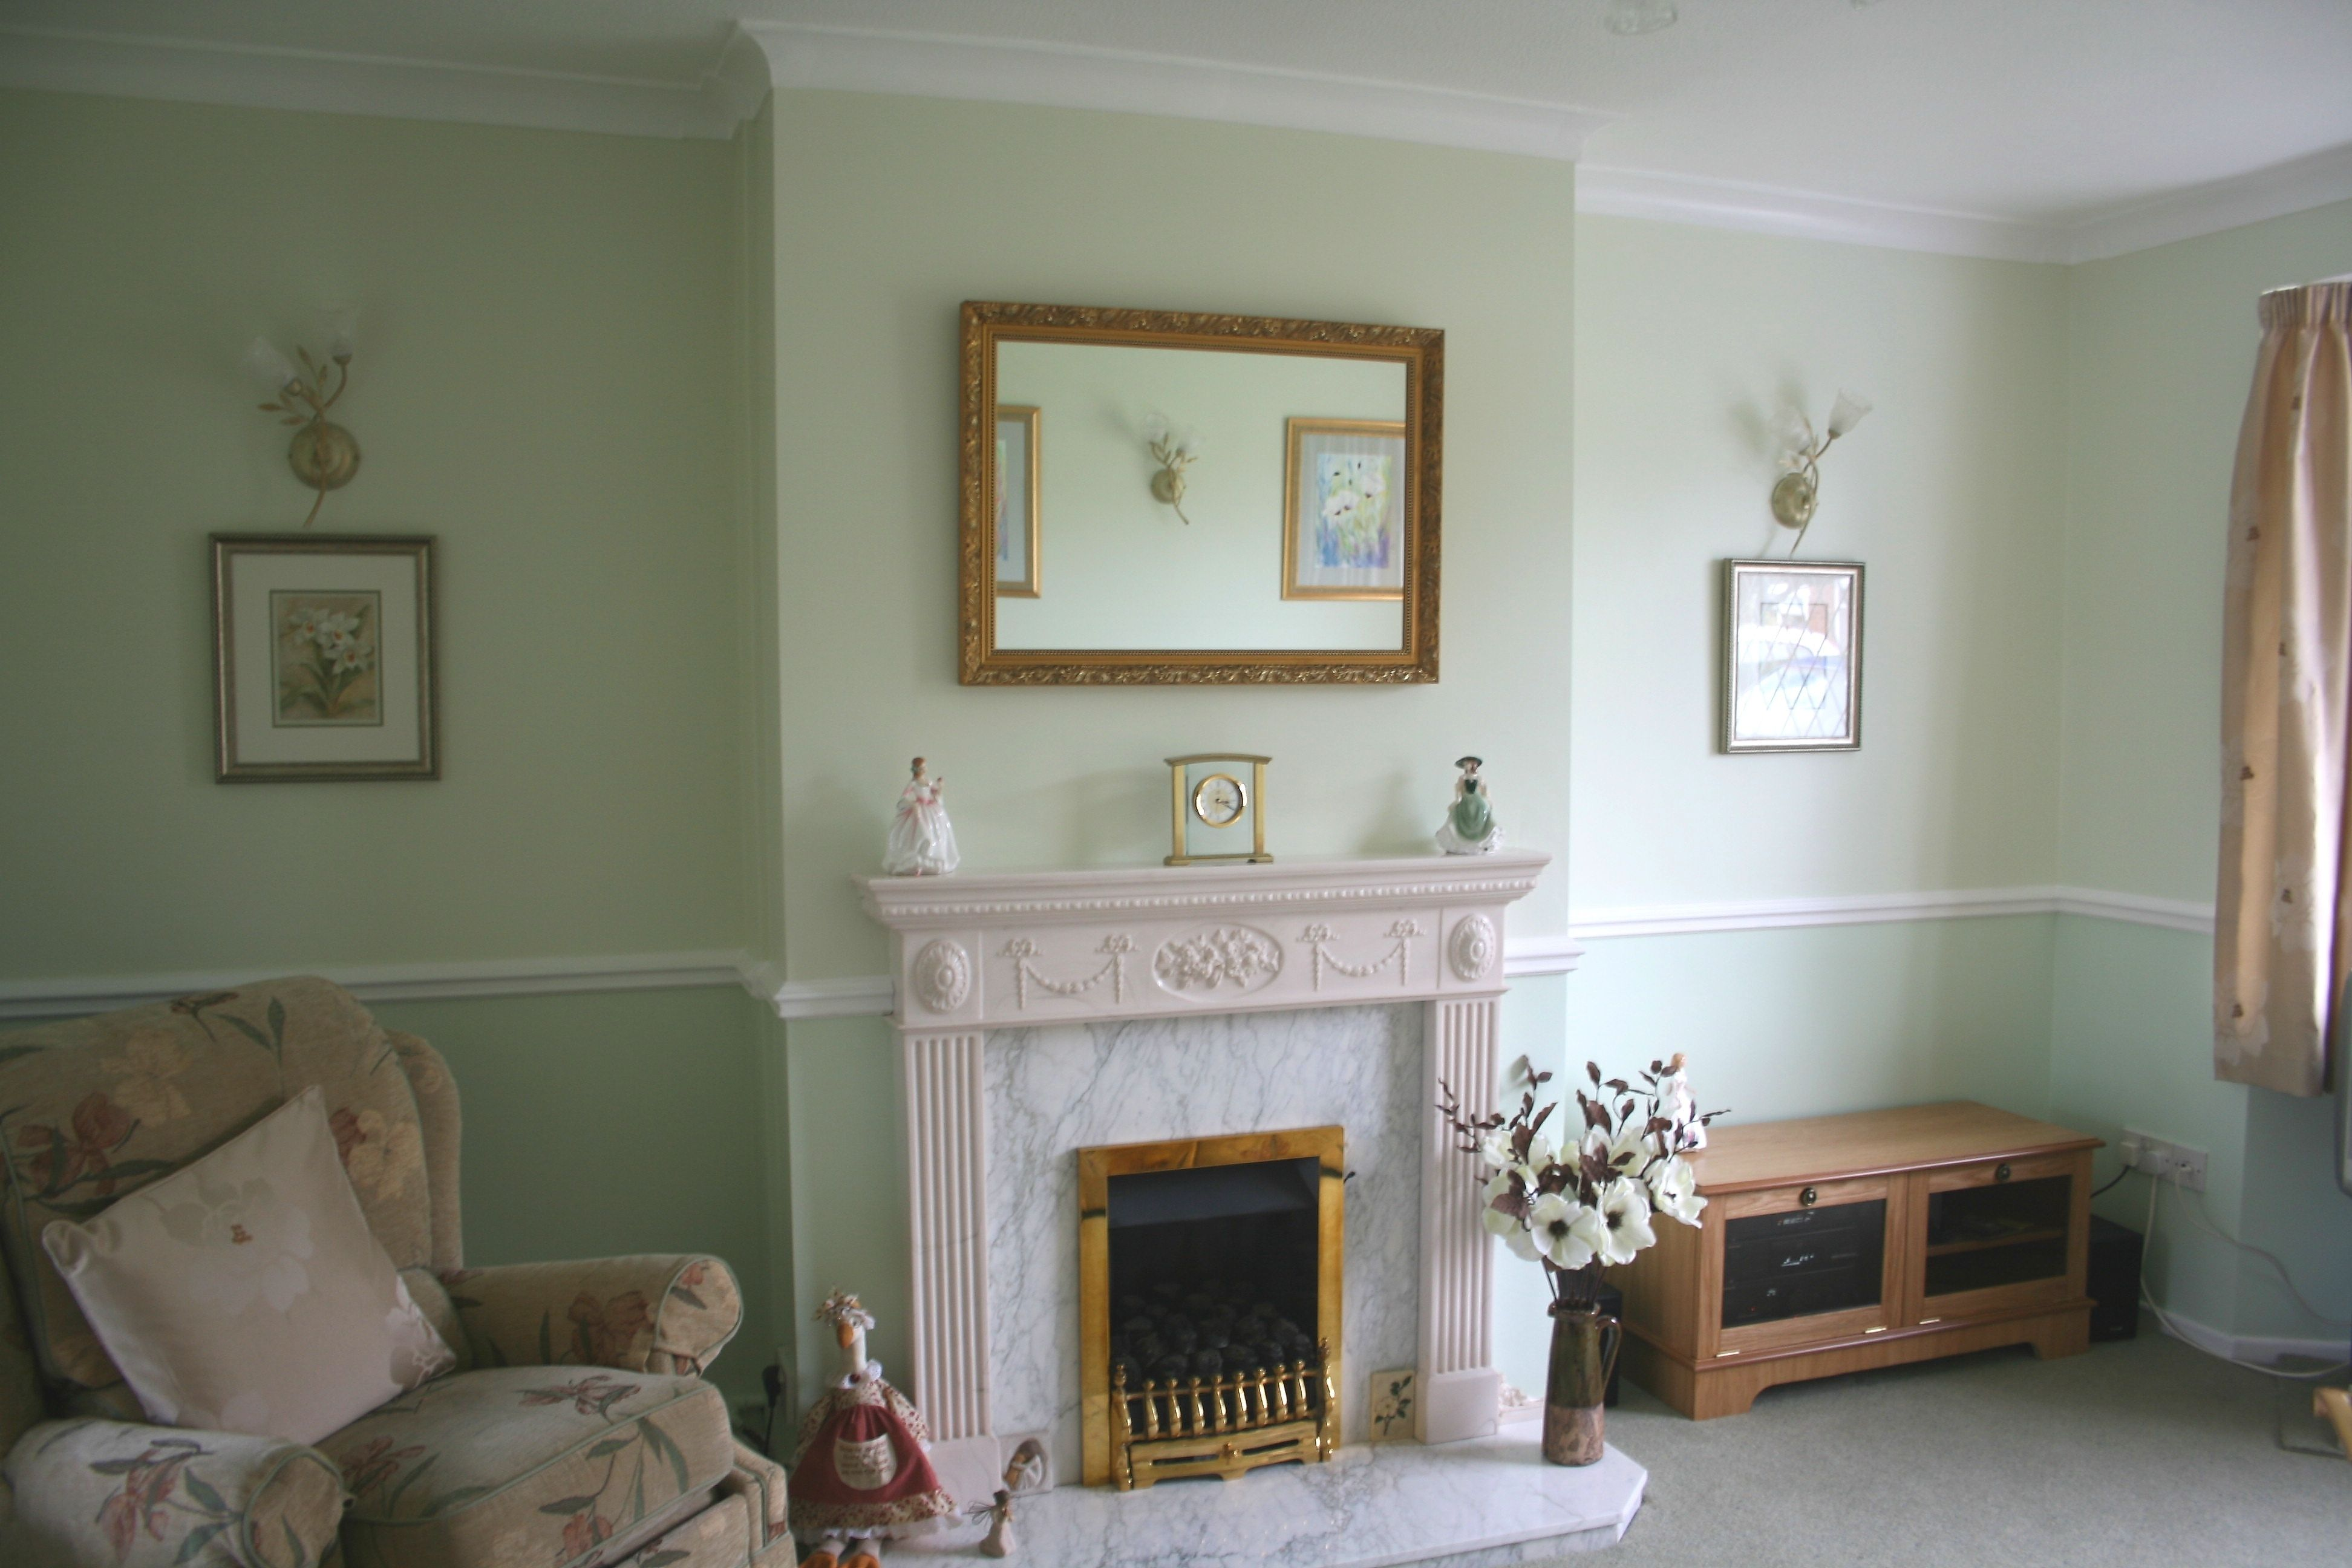 Decorating Ideas For Living Room With Dado Rail We Spend Lot